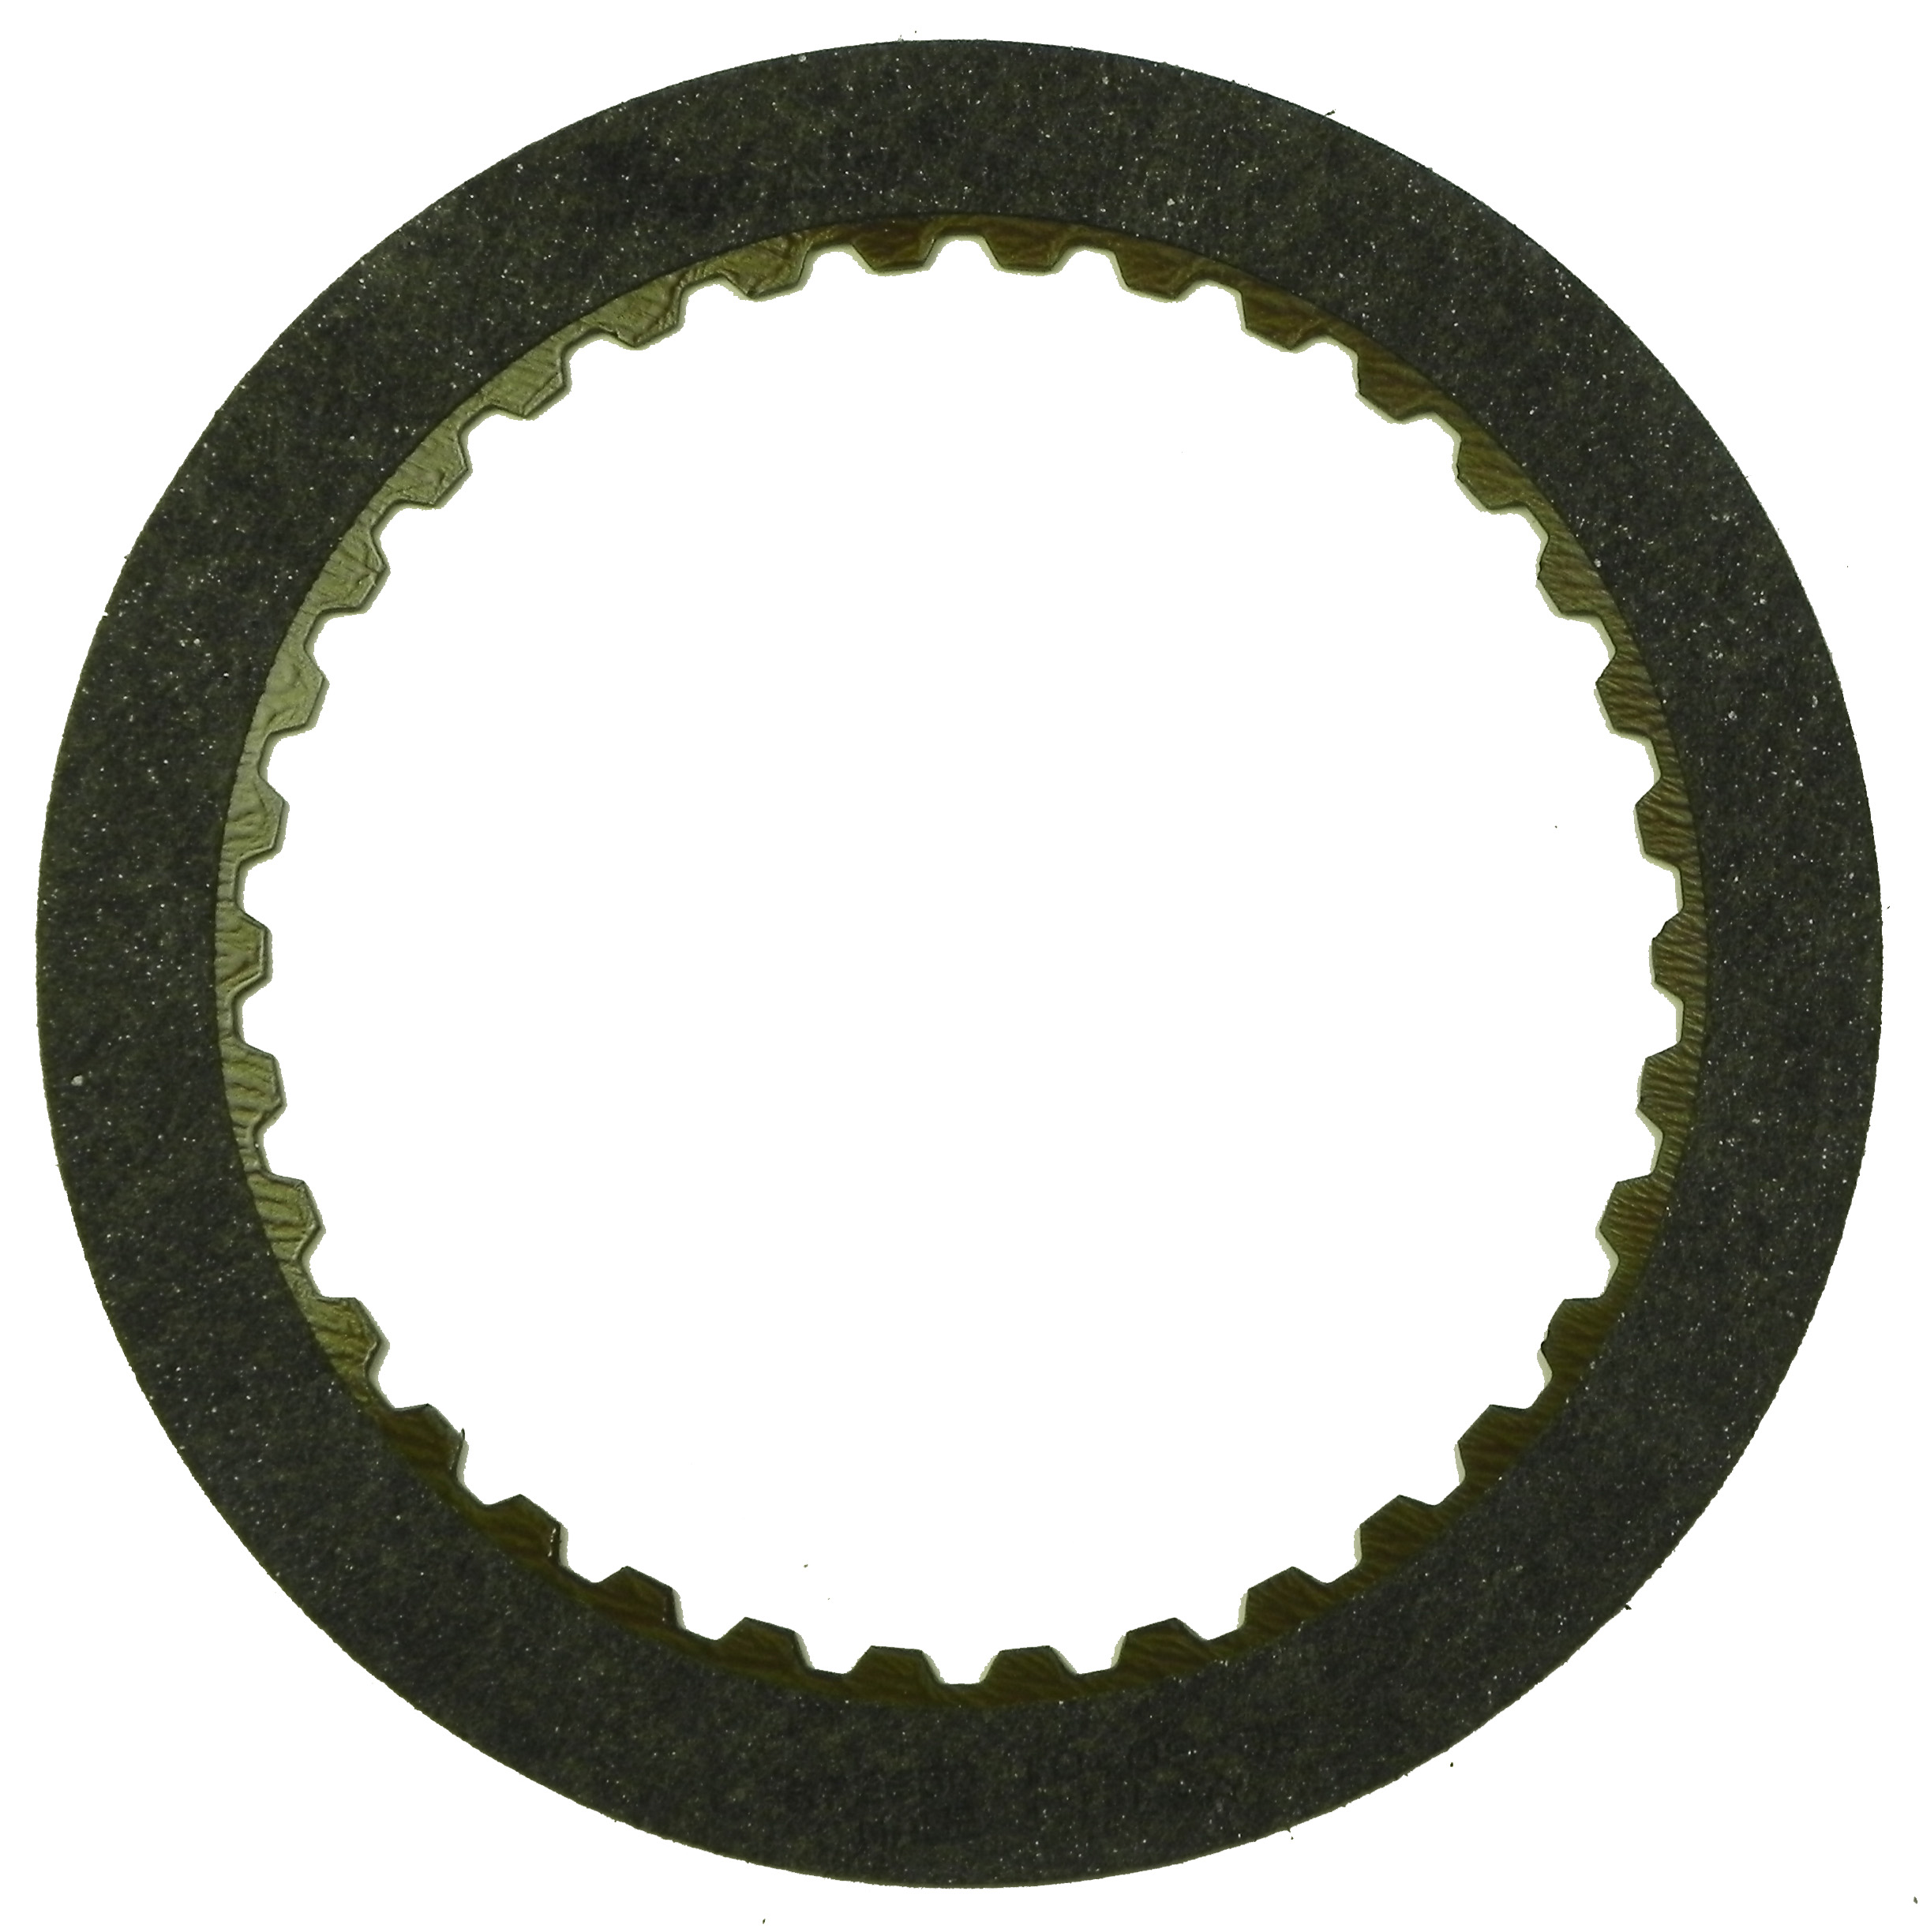 R572650 | 1999-2007 Friction Clutch Plate High Energy C2 Direct, C3 (LM) Underdrive High Energy